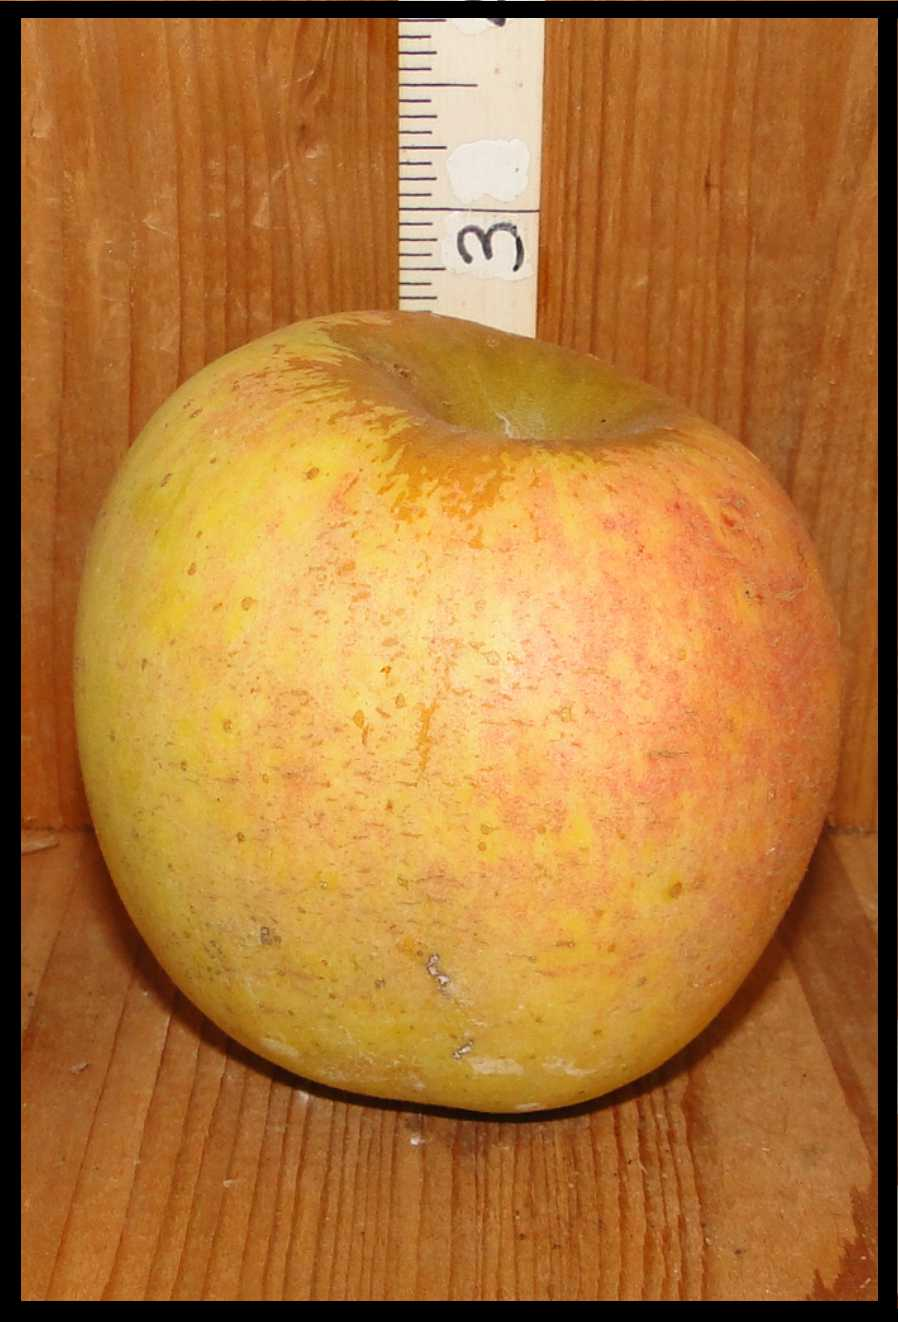 yellow apple with a pale pink blush